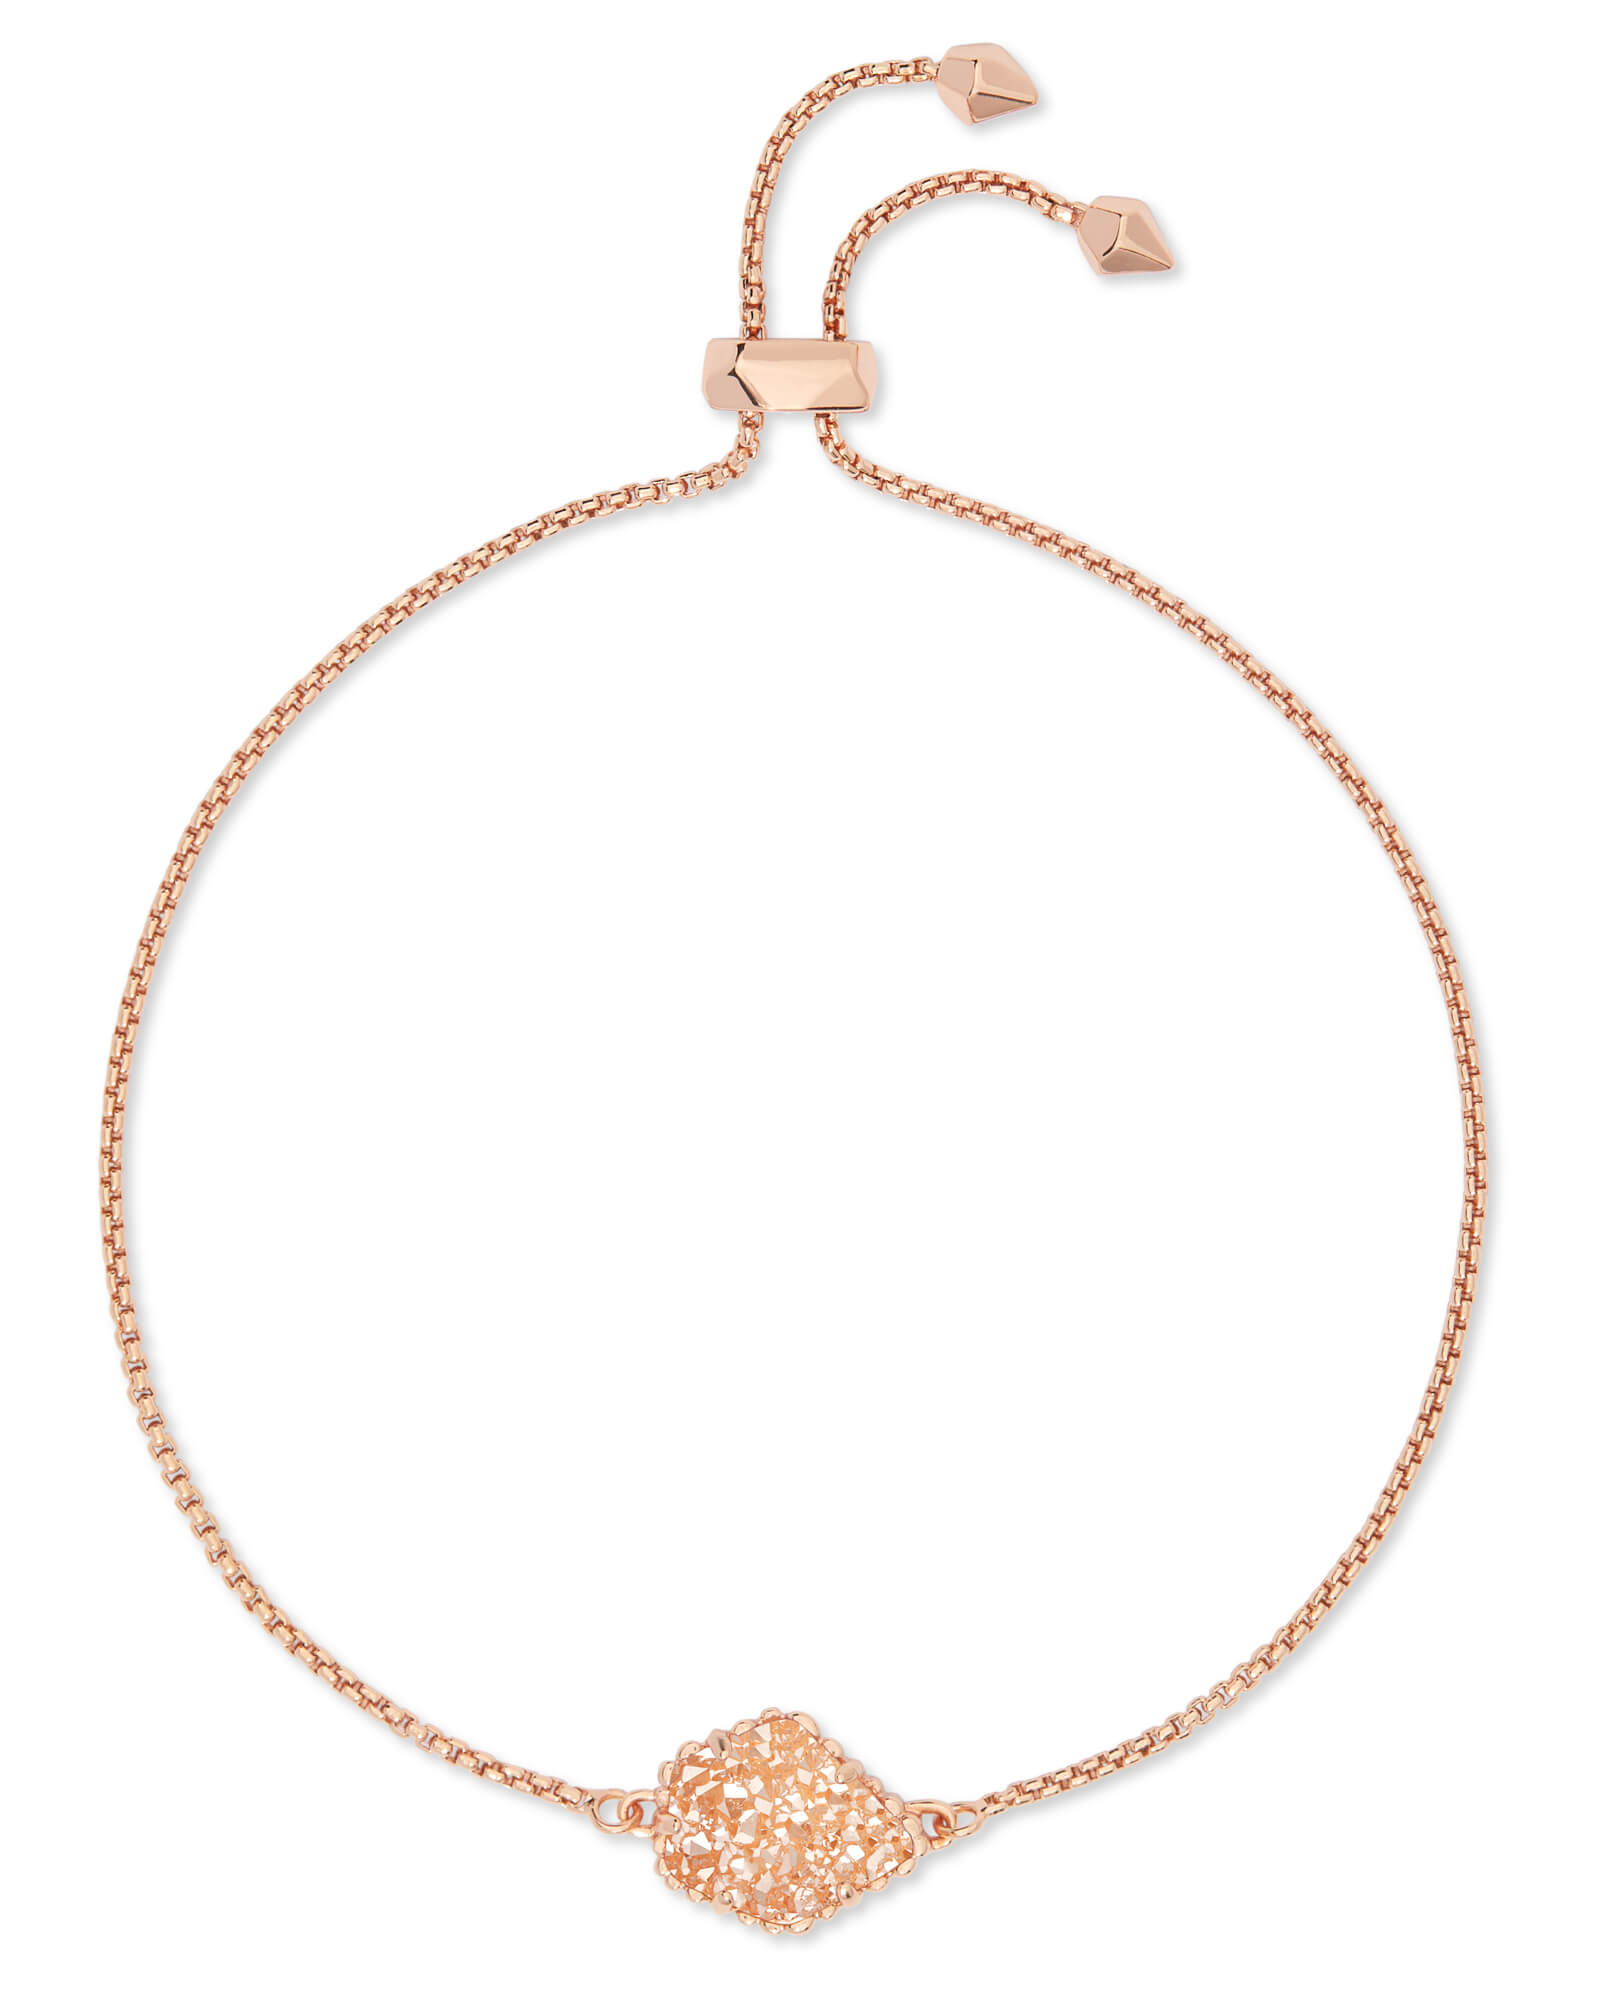 Theo Rose Gold Adjustable Chain Bracelet in Sand Drusy